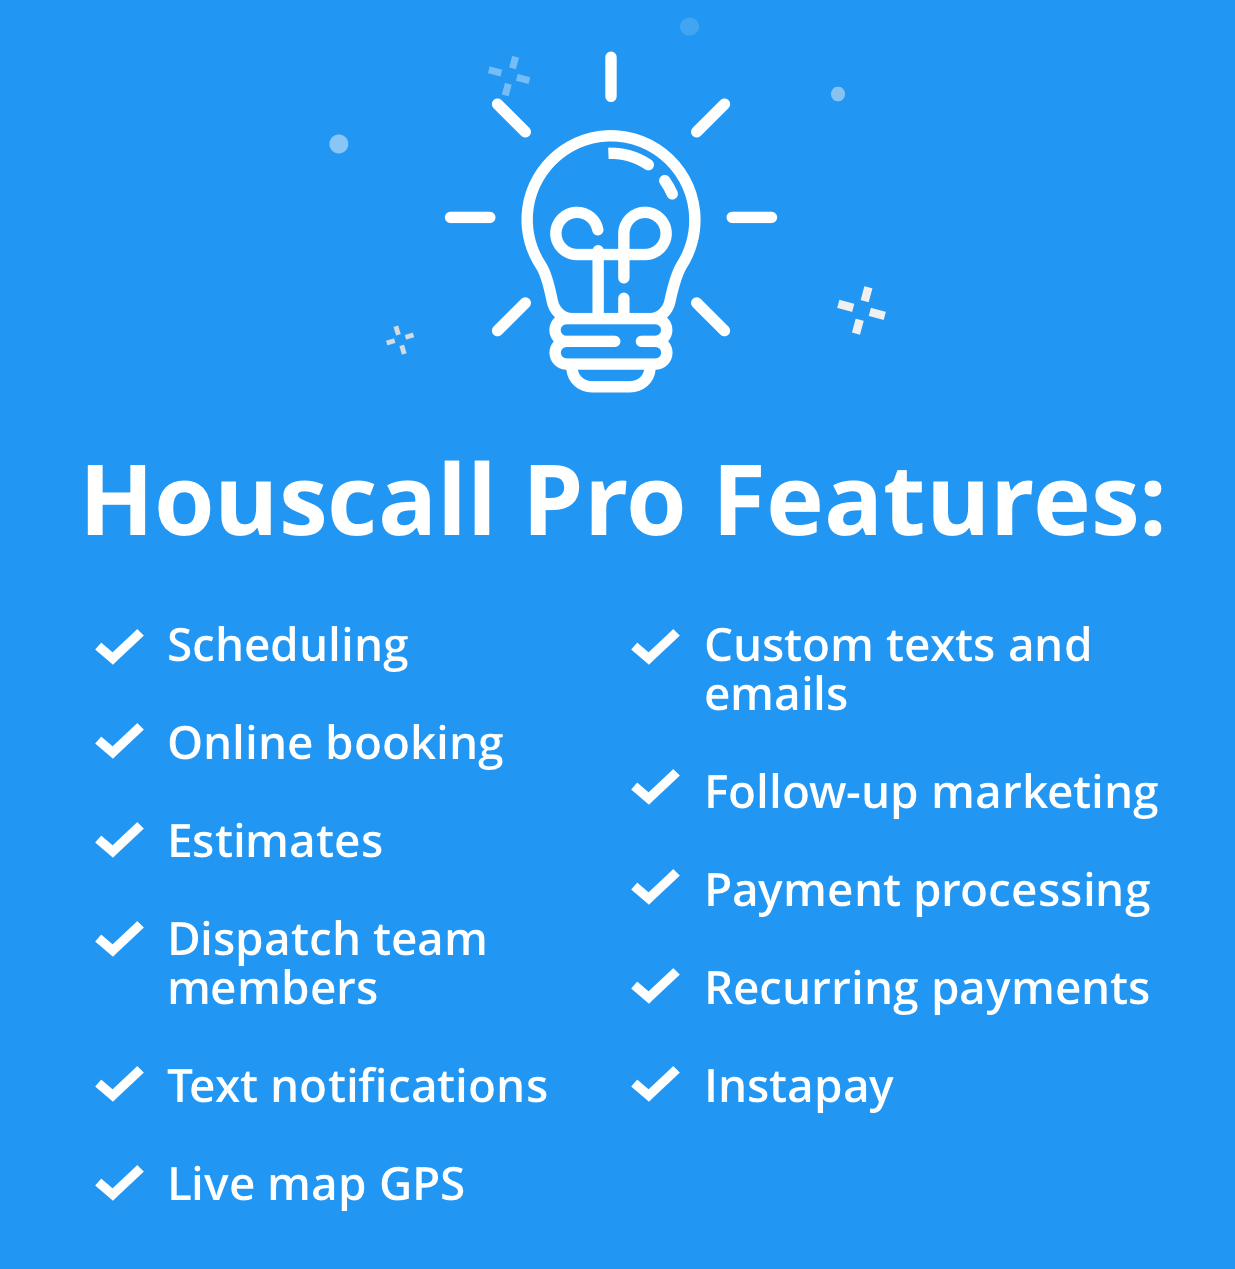 housecall pro features